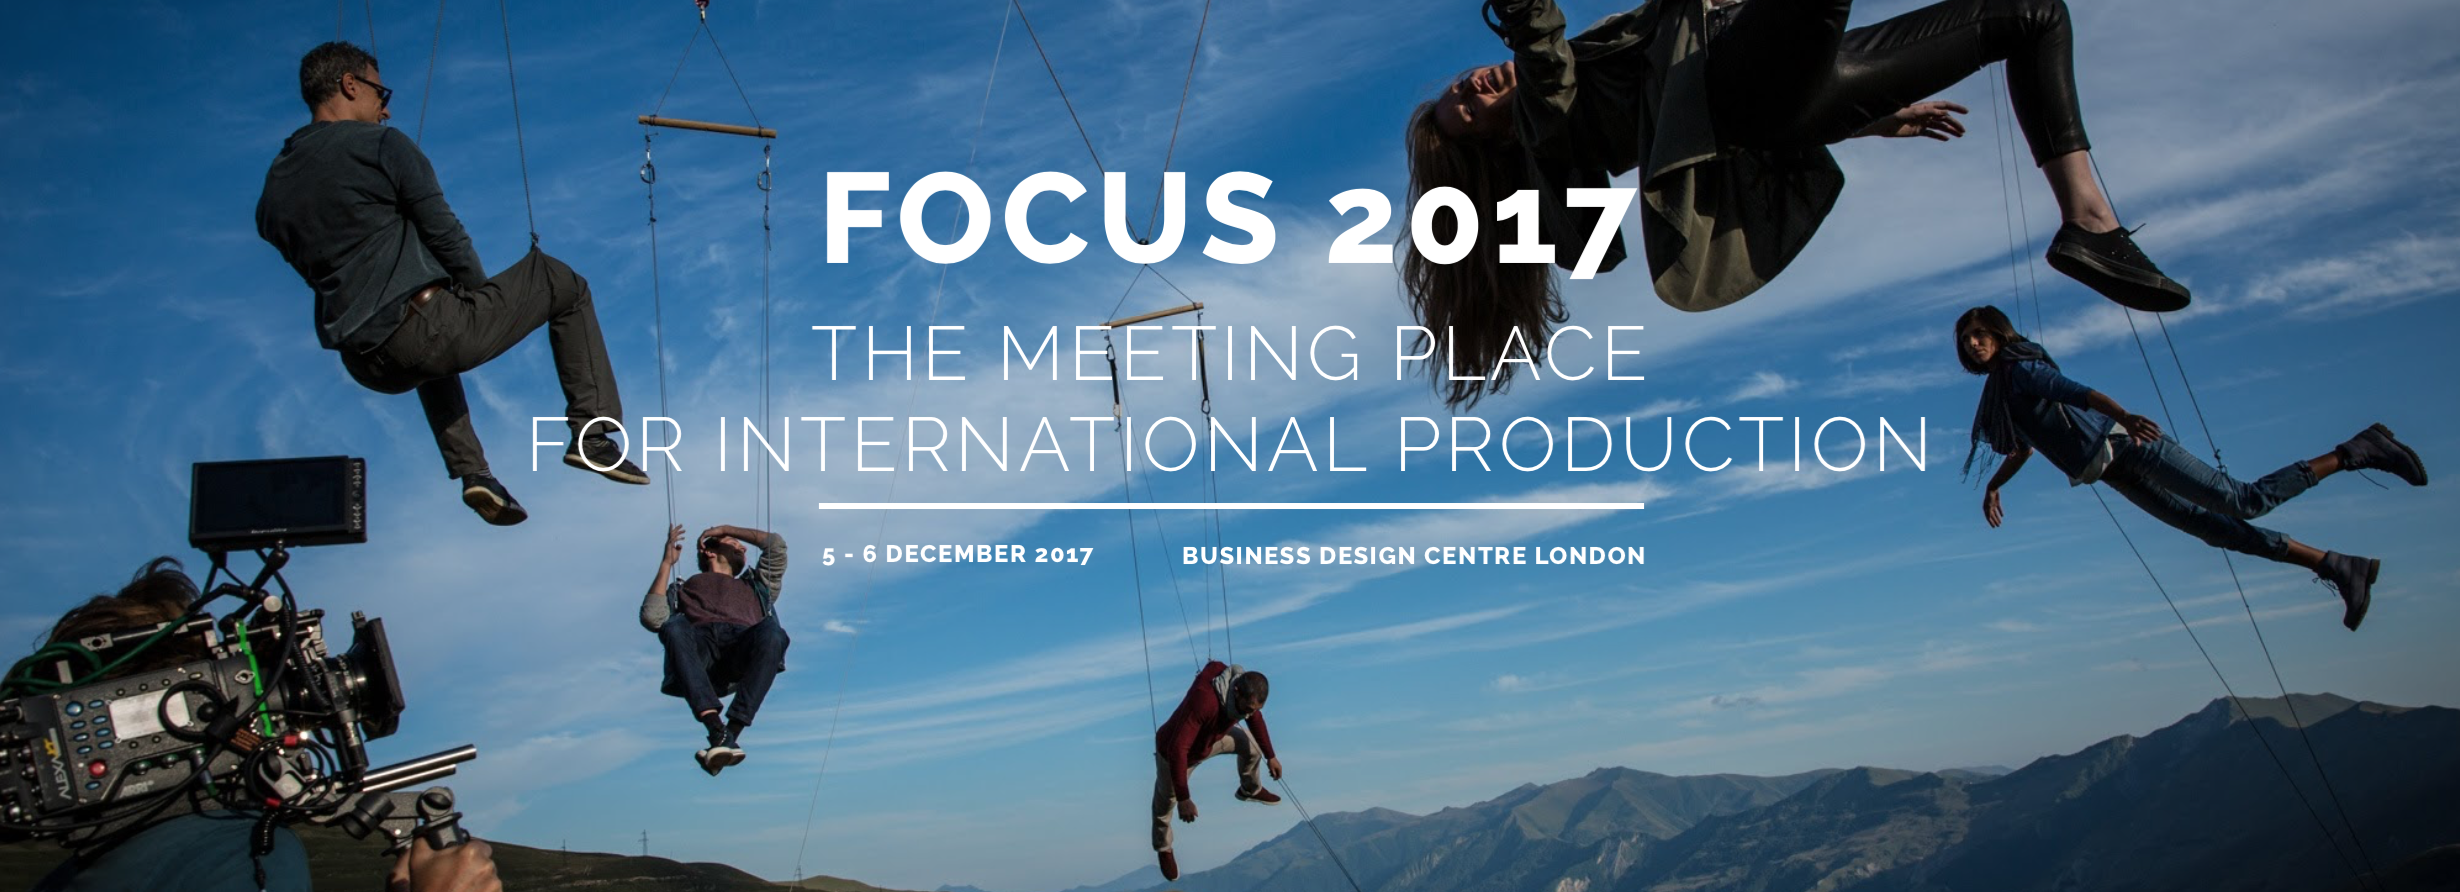 Focus 2017 - Click here to register